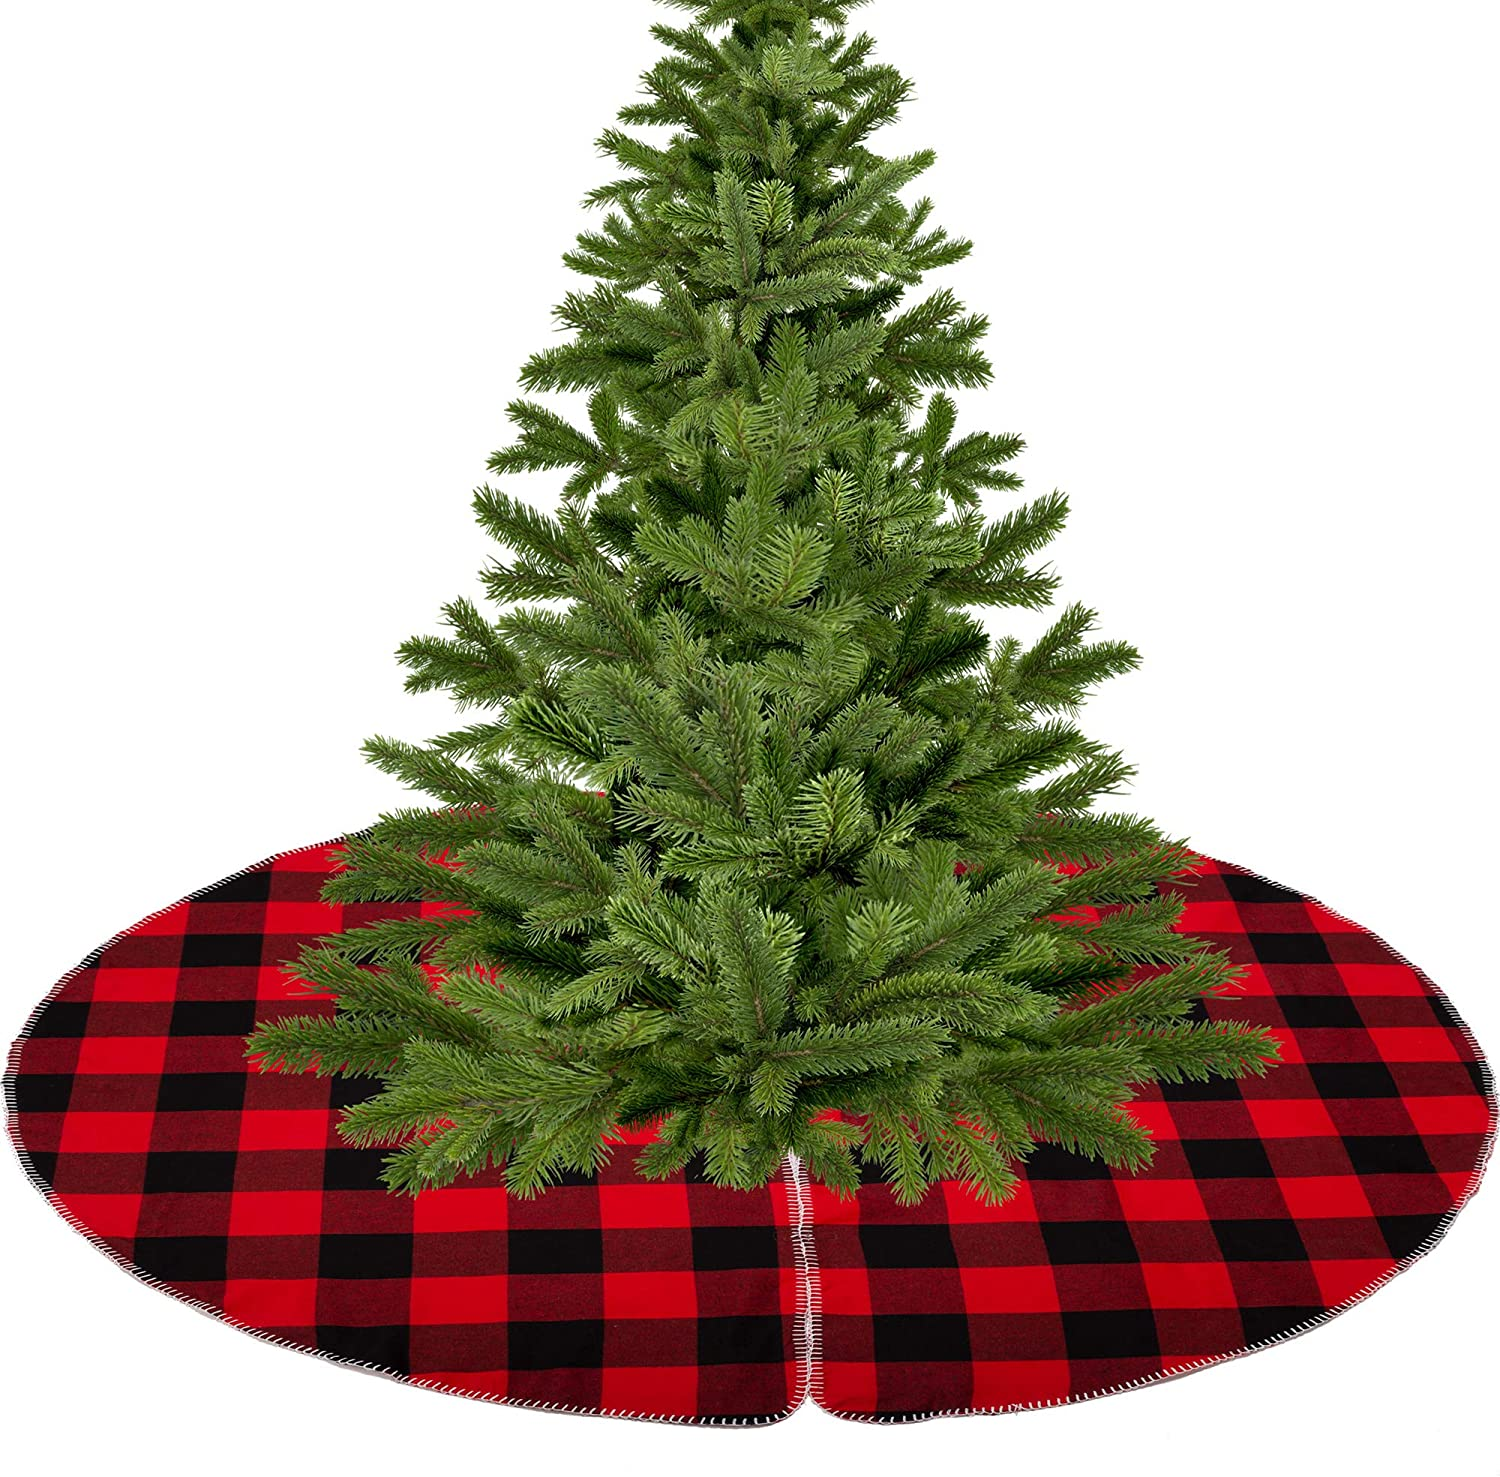 VGIA 48 inch Christmas Tree Skirt with Snowflake Decoration Christmas Tree Skirt for Christmas Tree for Holiday and Party…